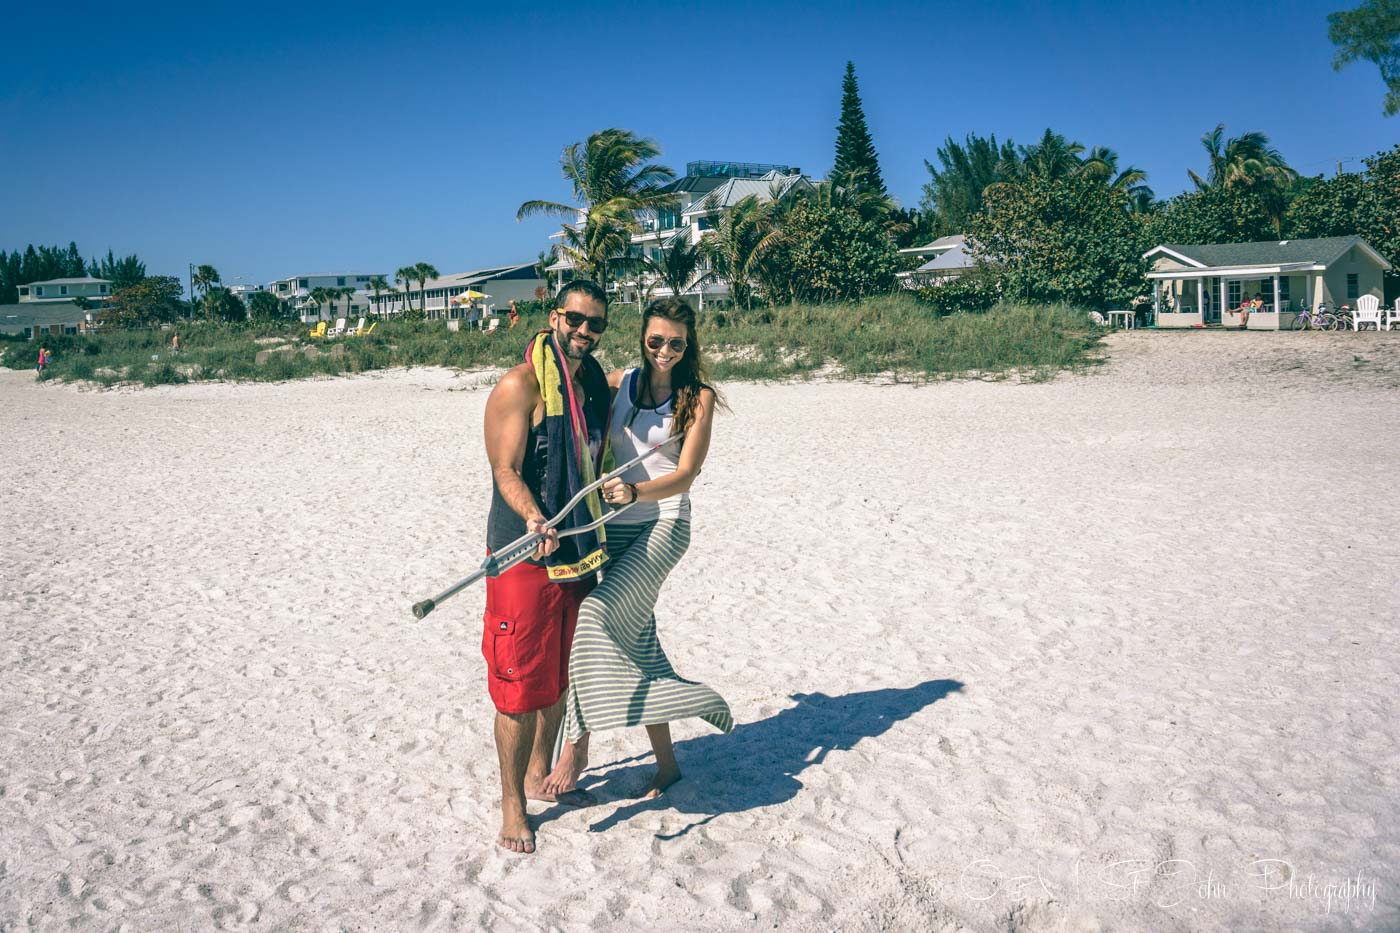 Max & Oksana on anna Maria Island Beach in Florida, USA